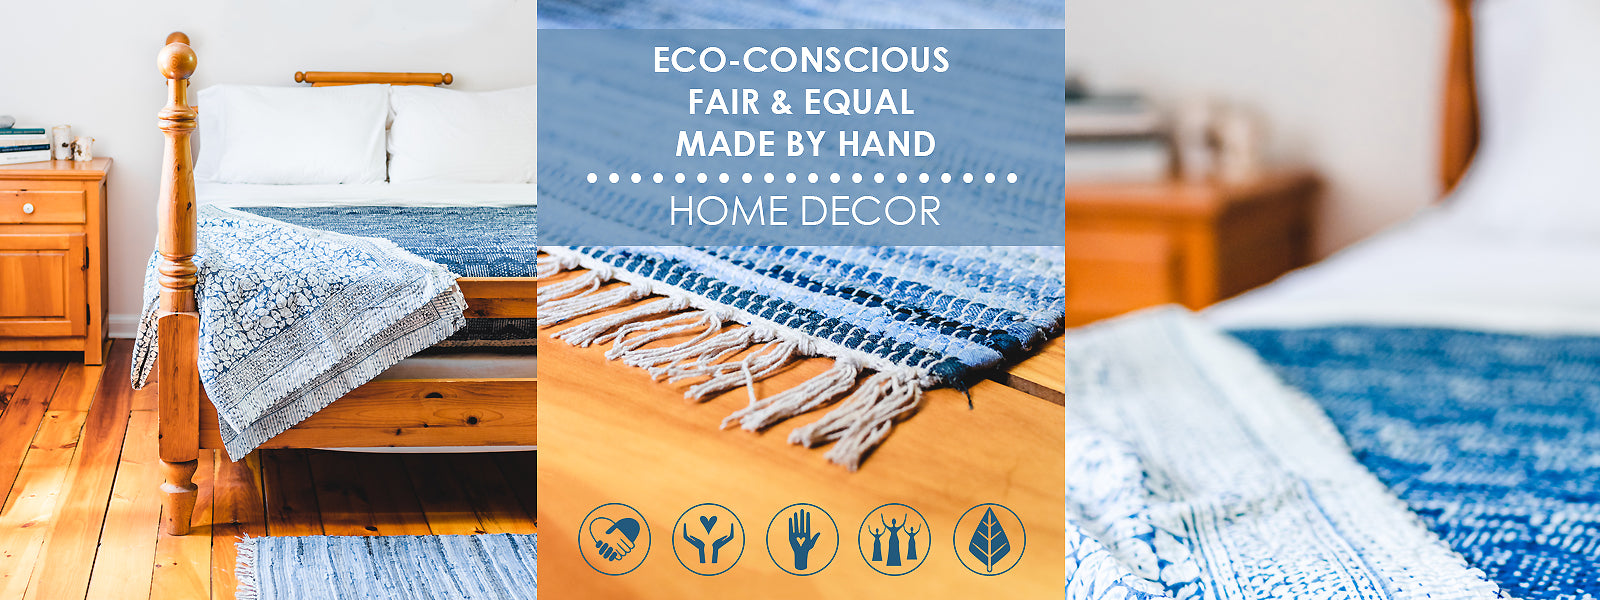 fair-trade-pure-art-montreal-boutique-ethical-socially-conscious